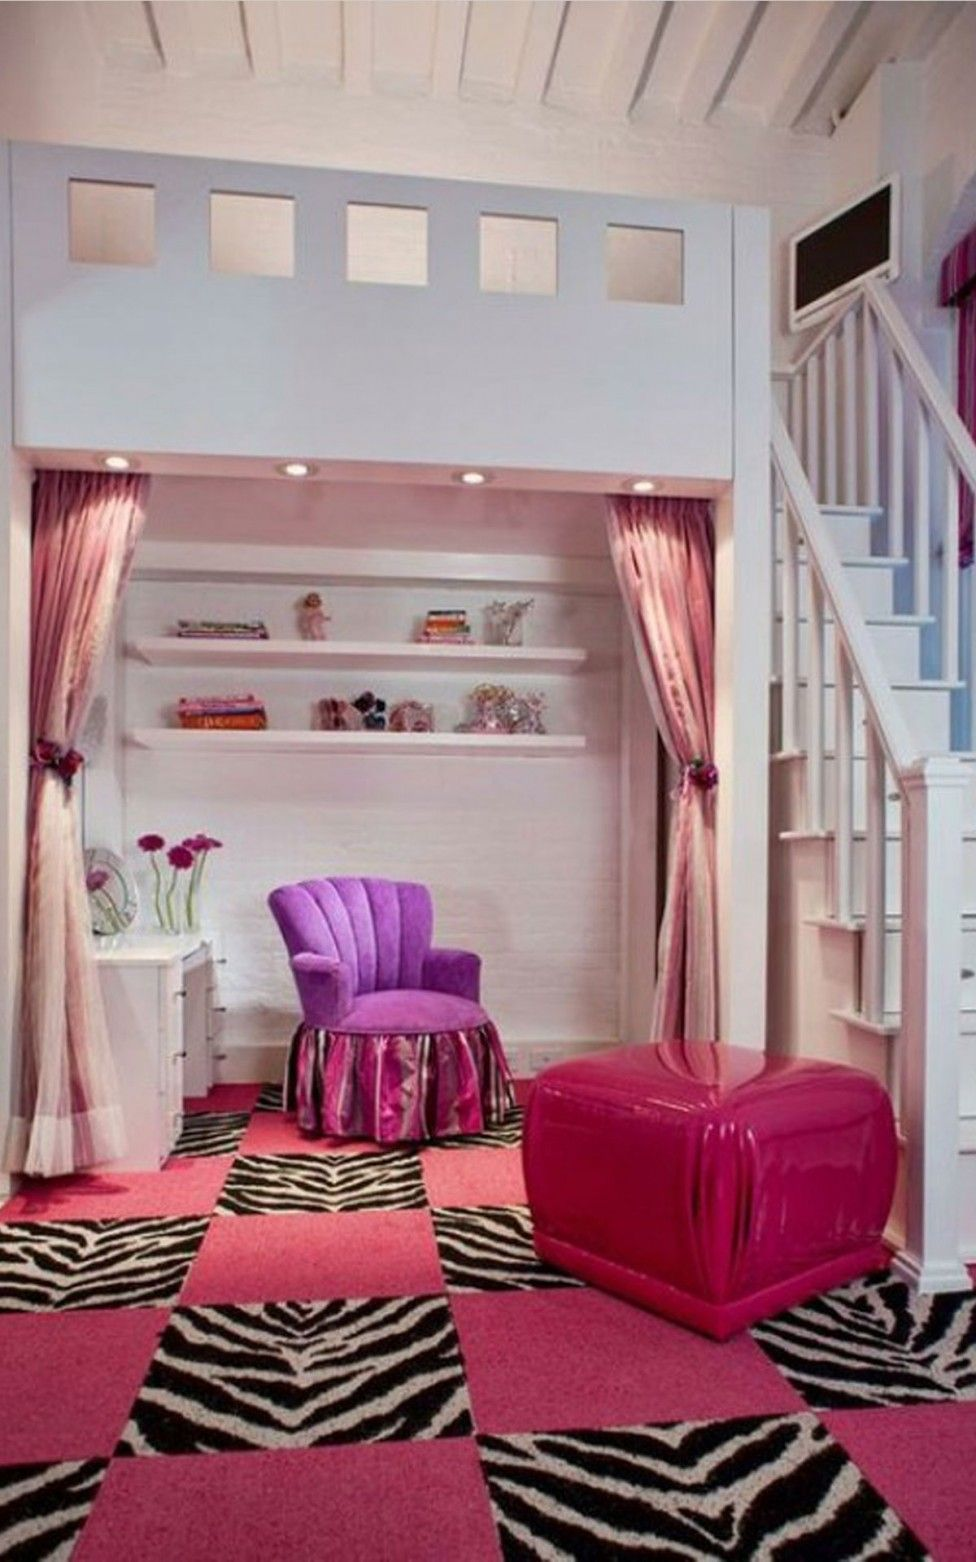 Children Bedroom Ideas Small Spaces Ideas Interior small room ideas for girls with cute color bedroom 22 pretty girls